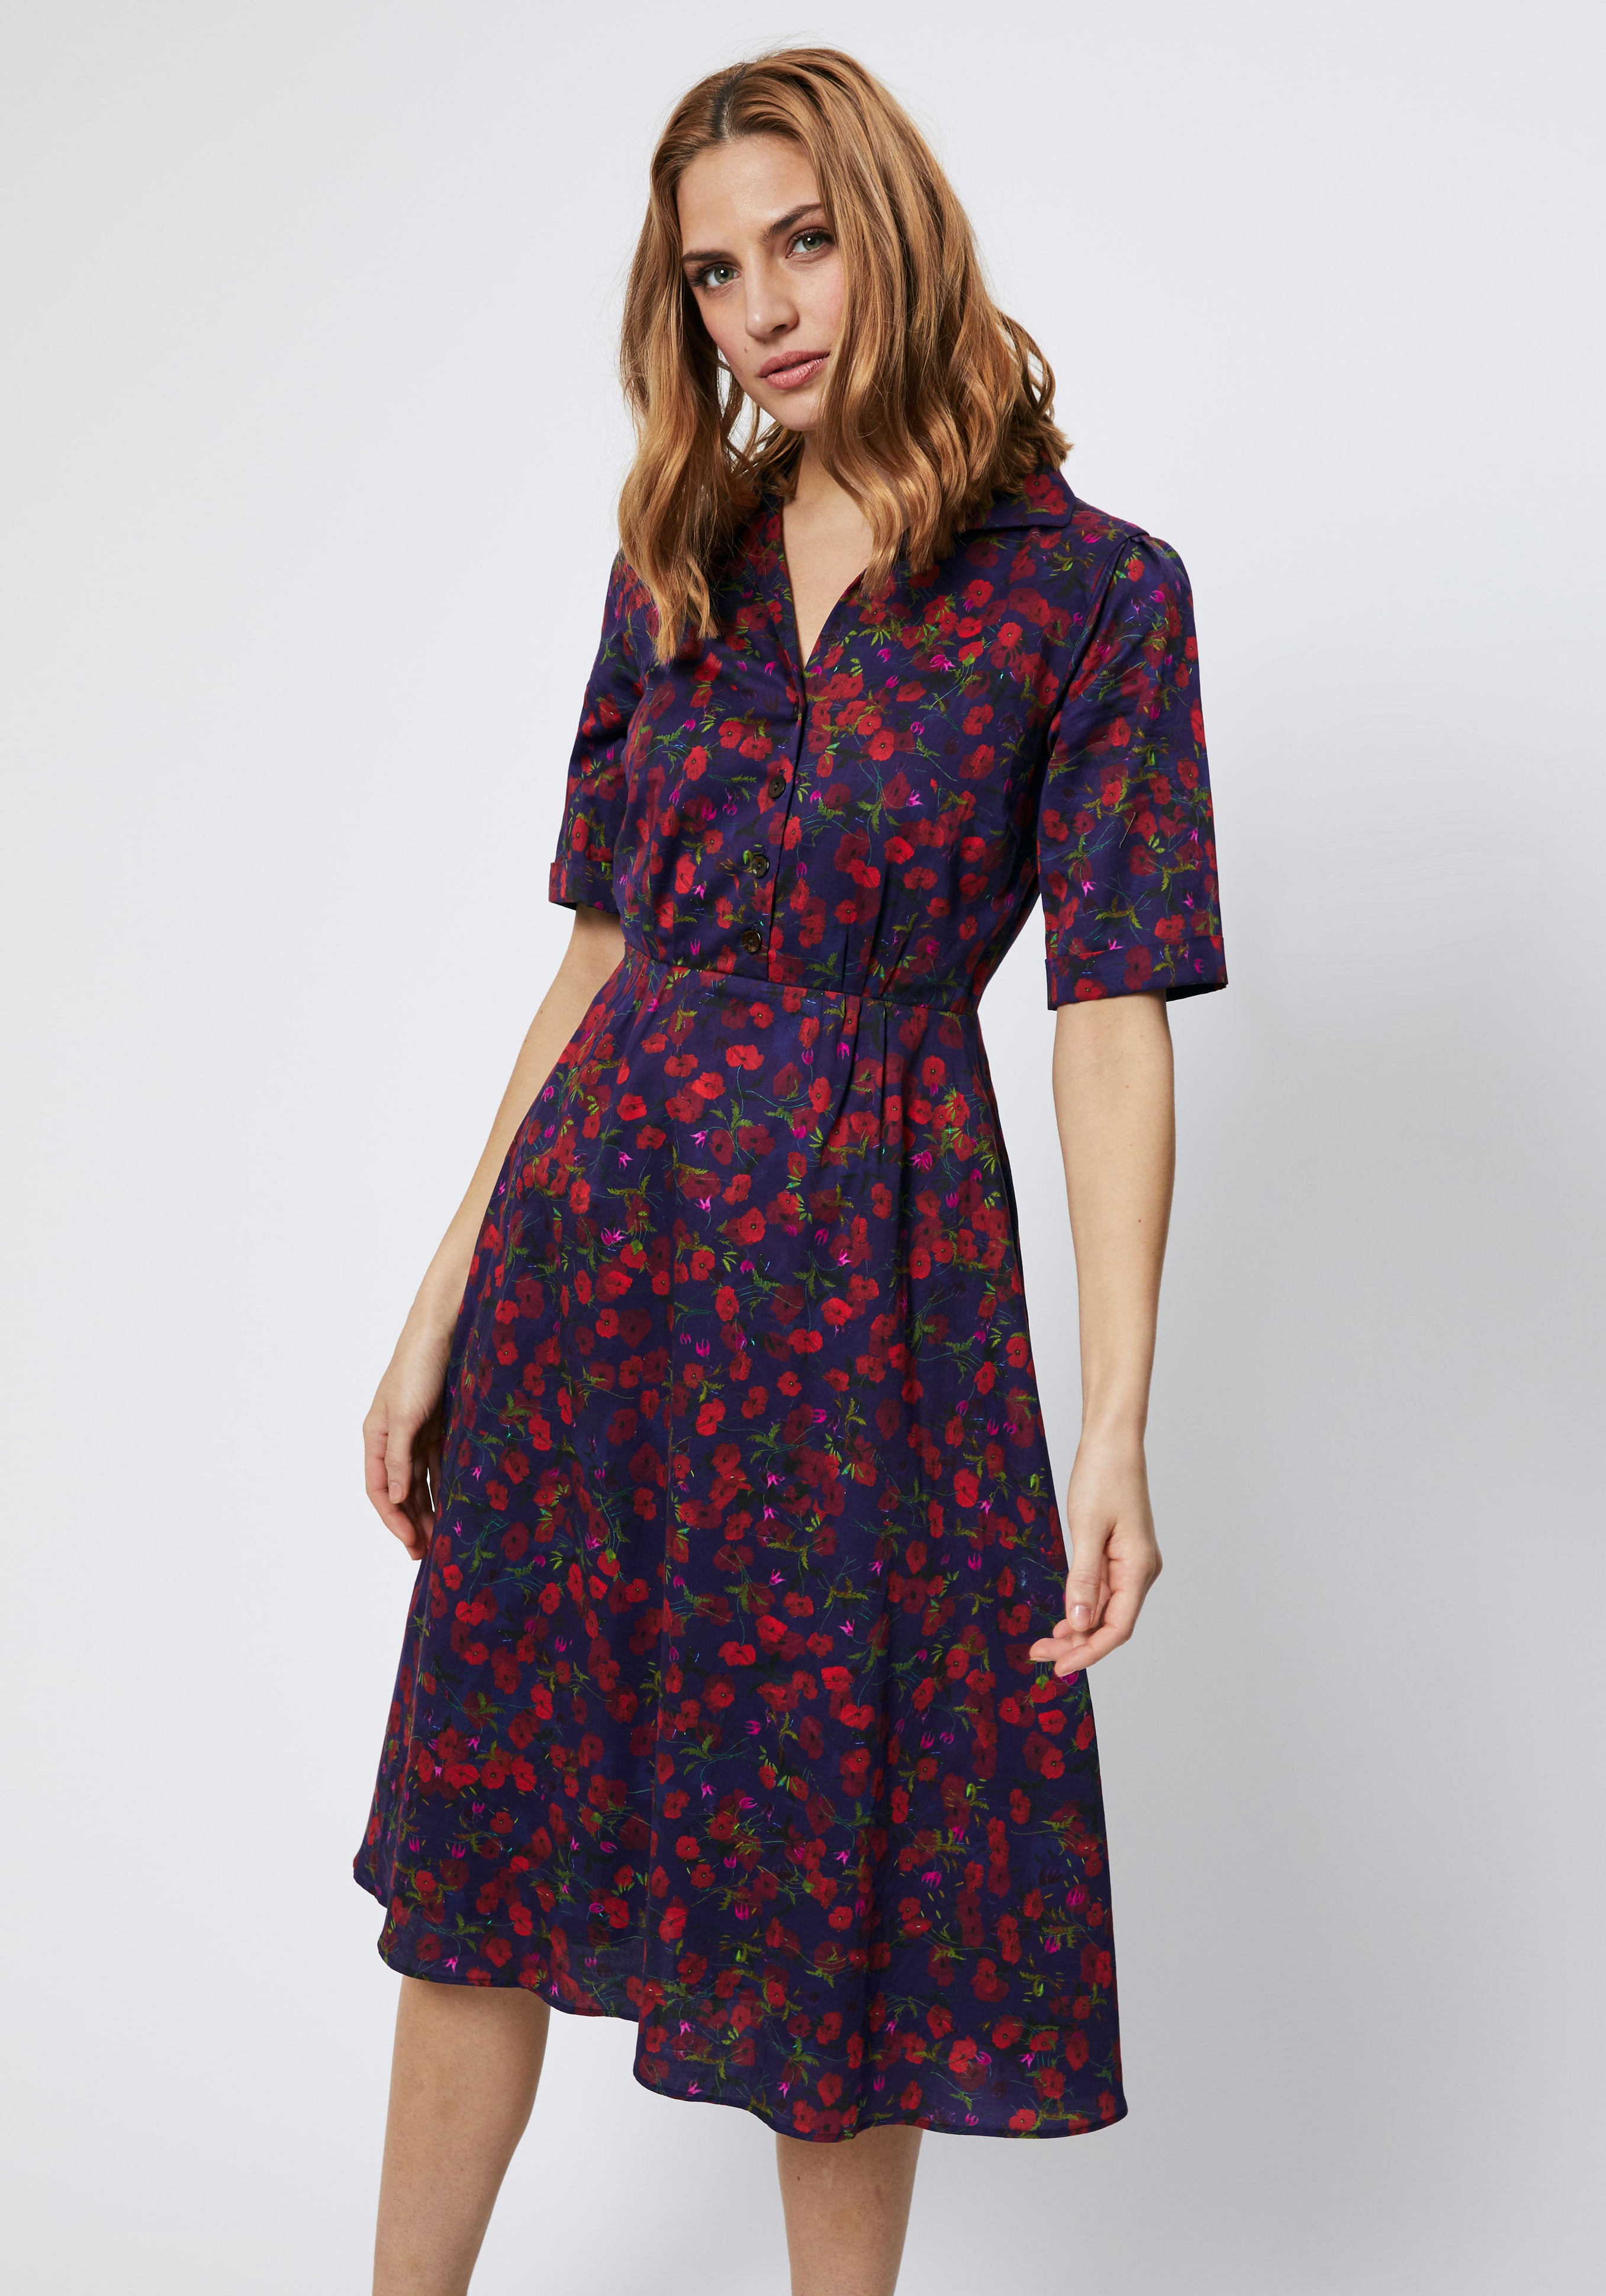 Tea Dress in Navy Pablo Print